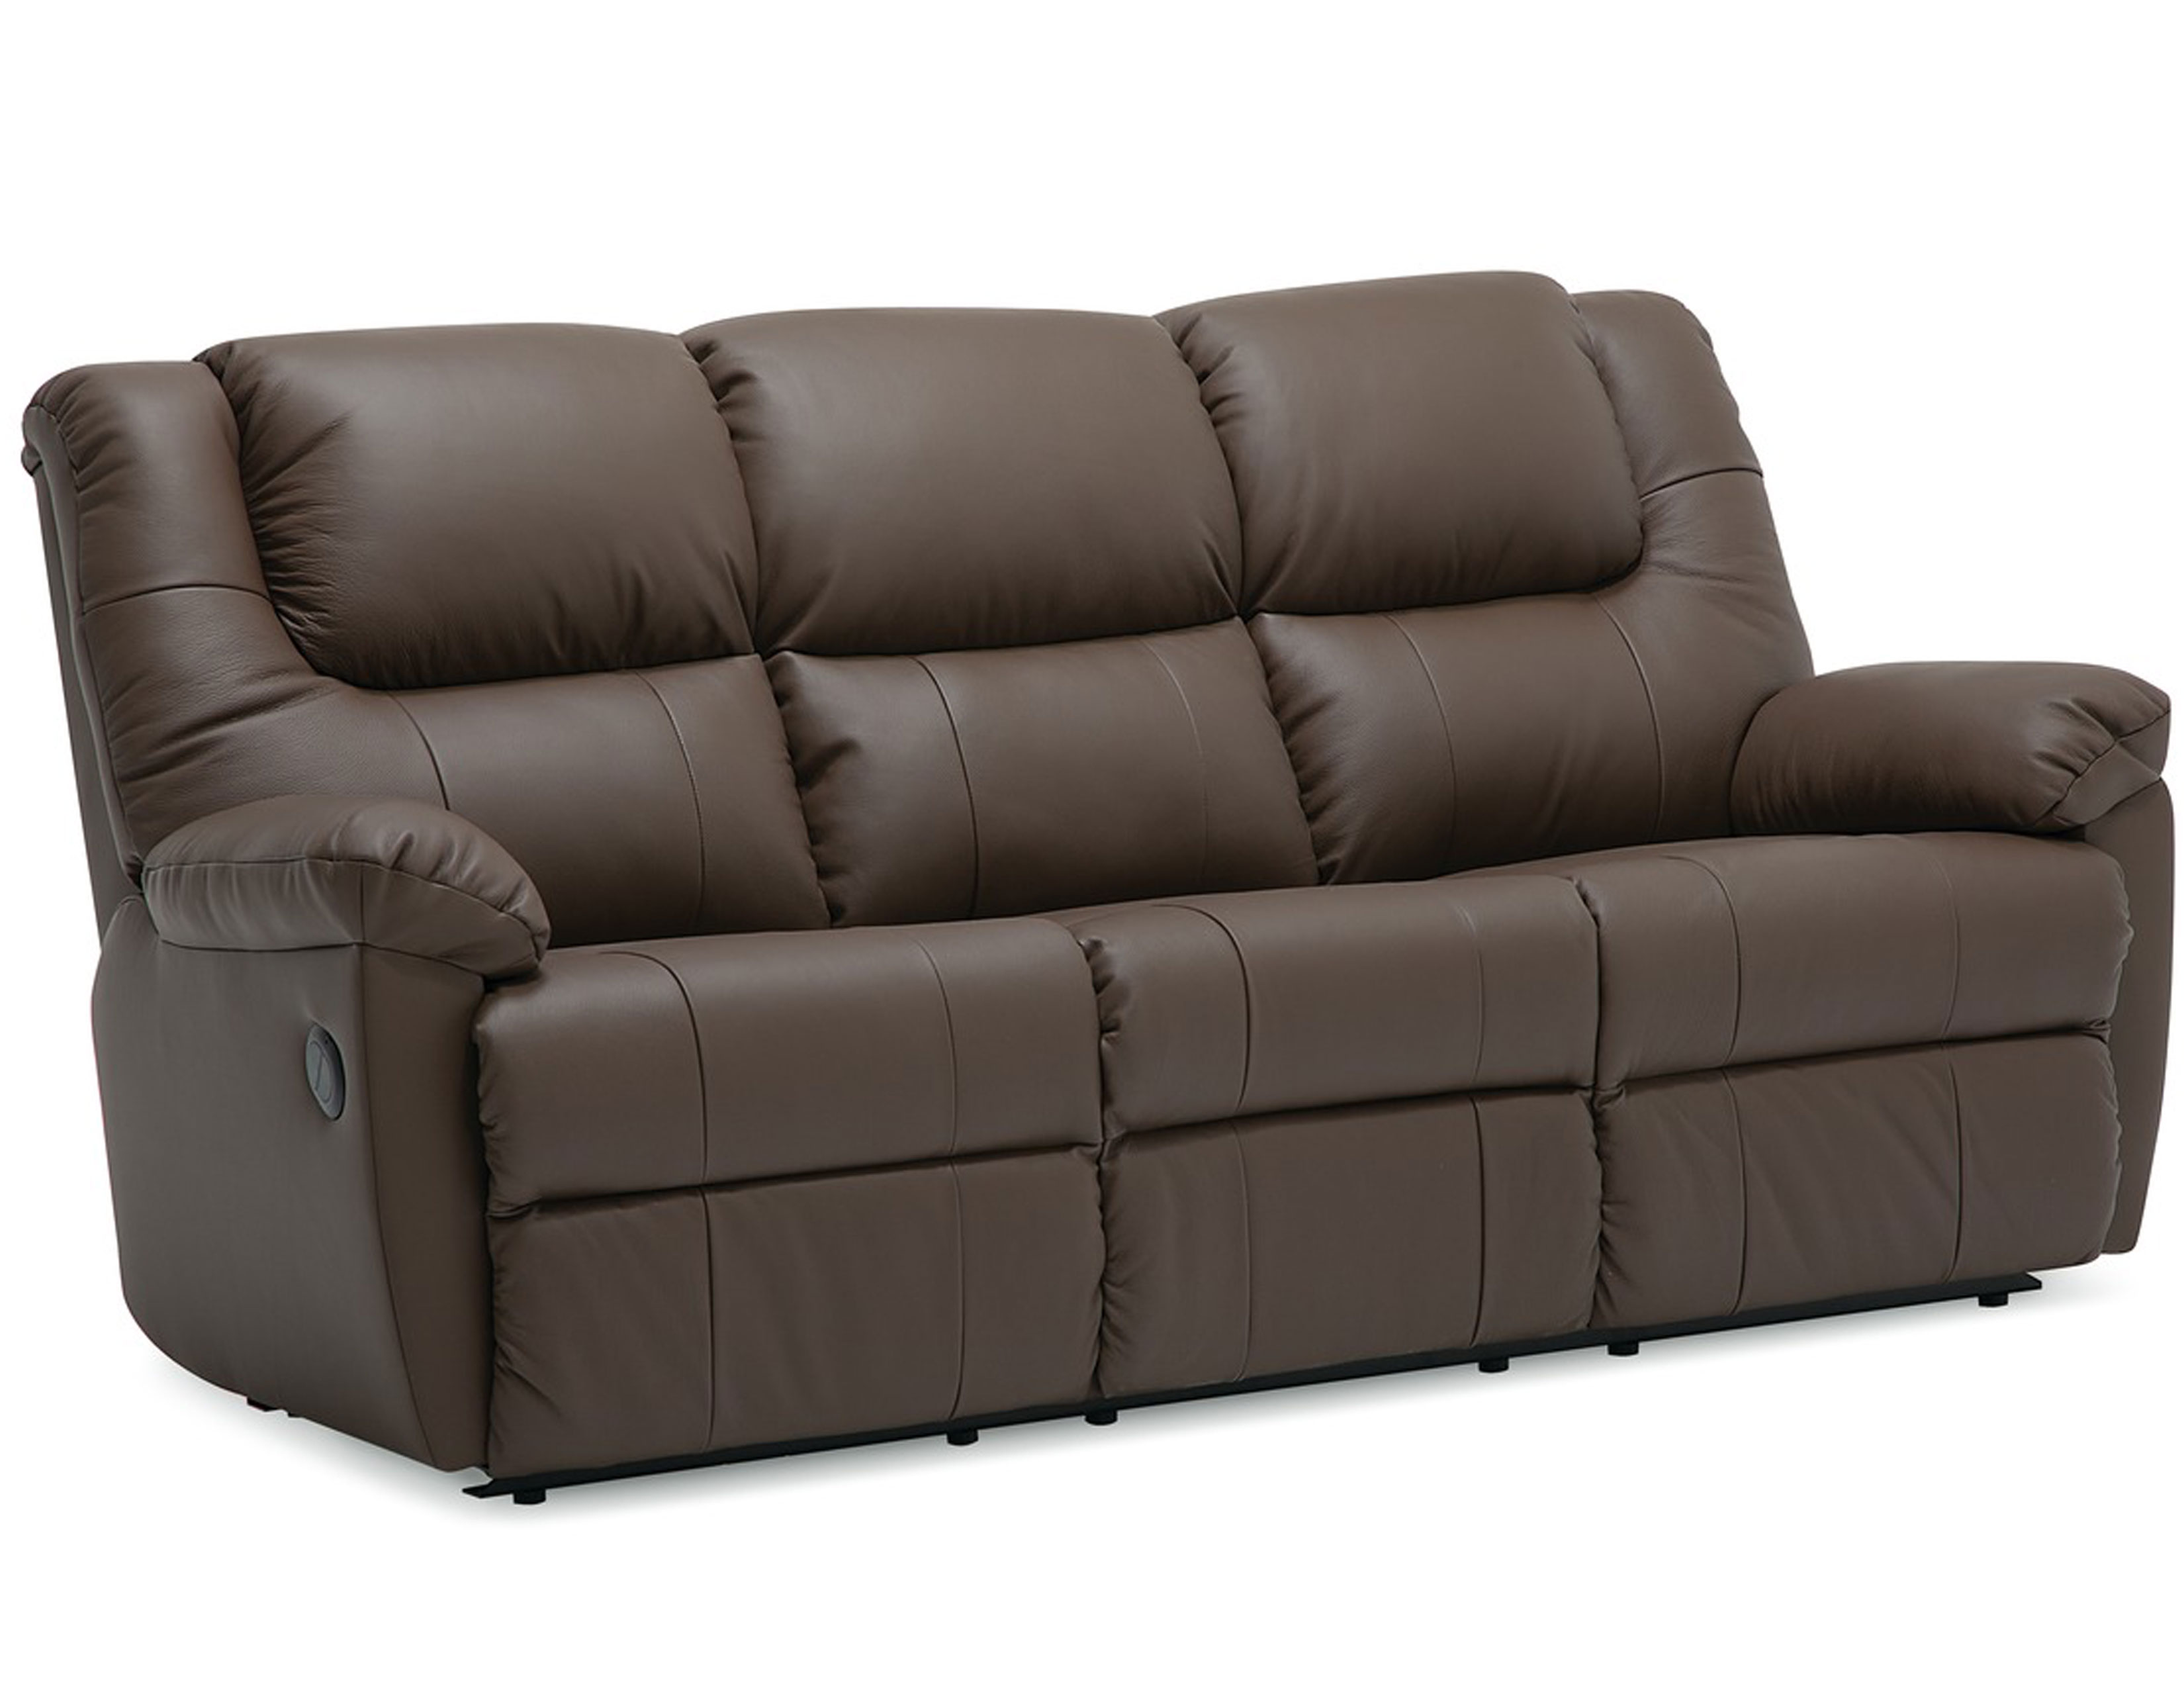 Brilliant Tundra 41043 46043 Reclining Sofa 350 Sofas And Sectionals Ibusinesslaw Wood Chair Design Ideas Ibusinesslaworg